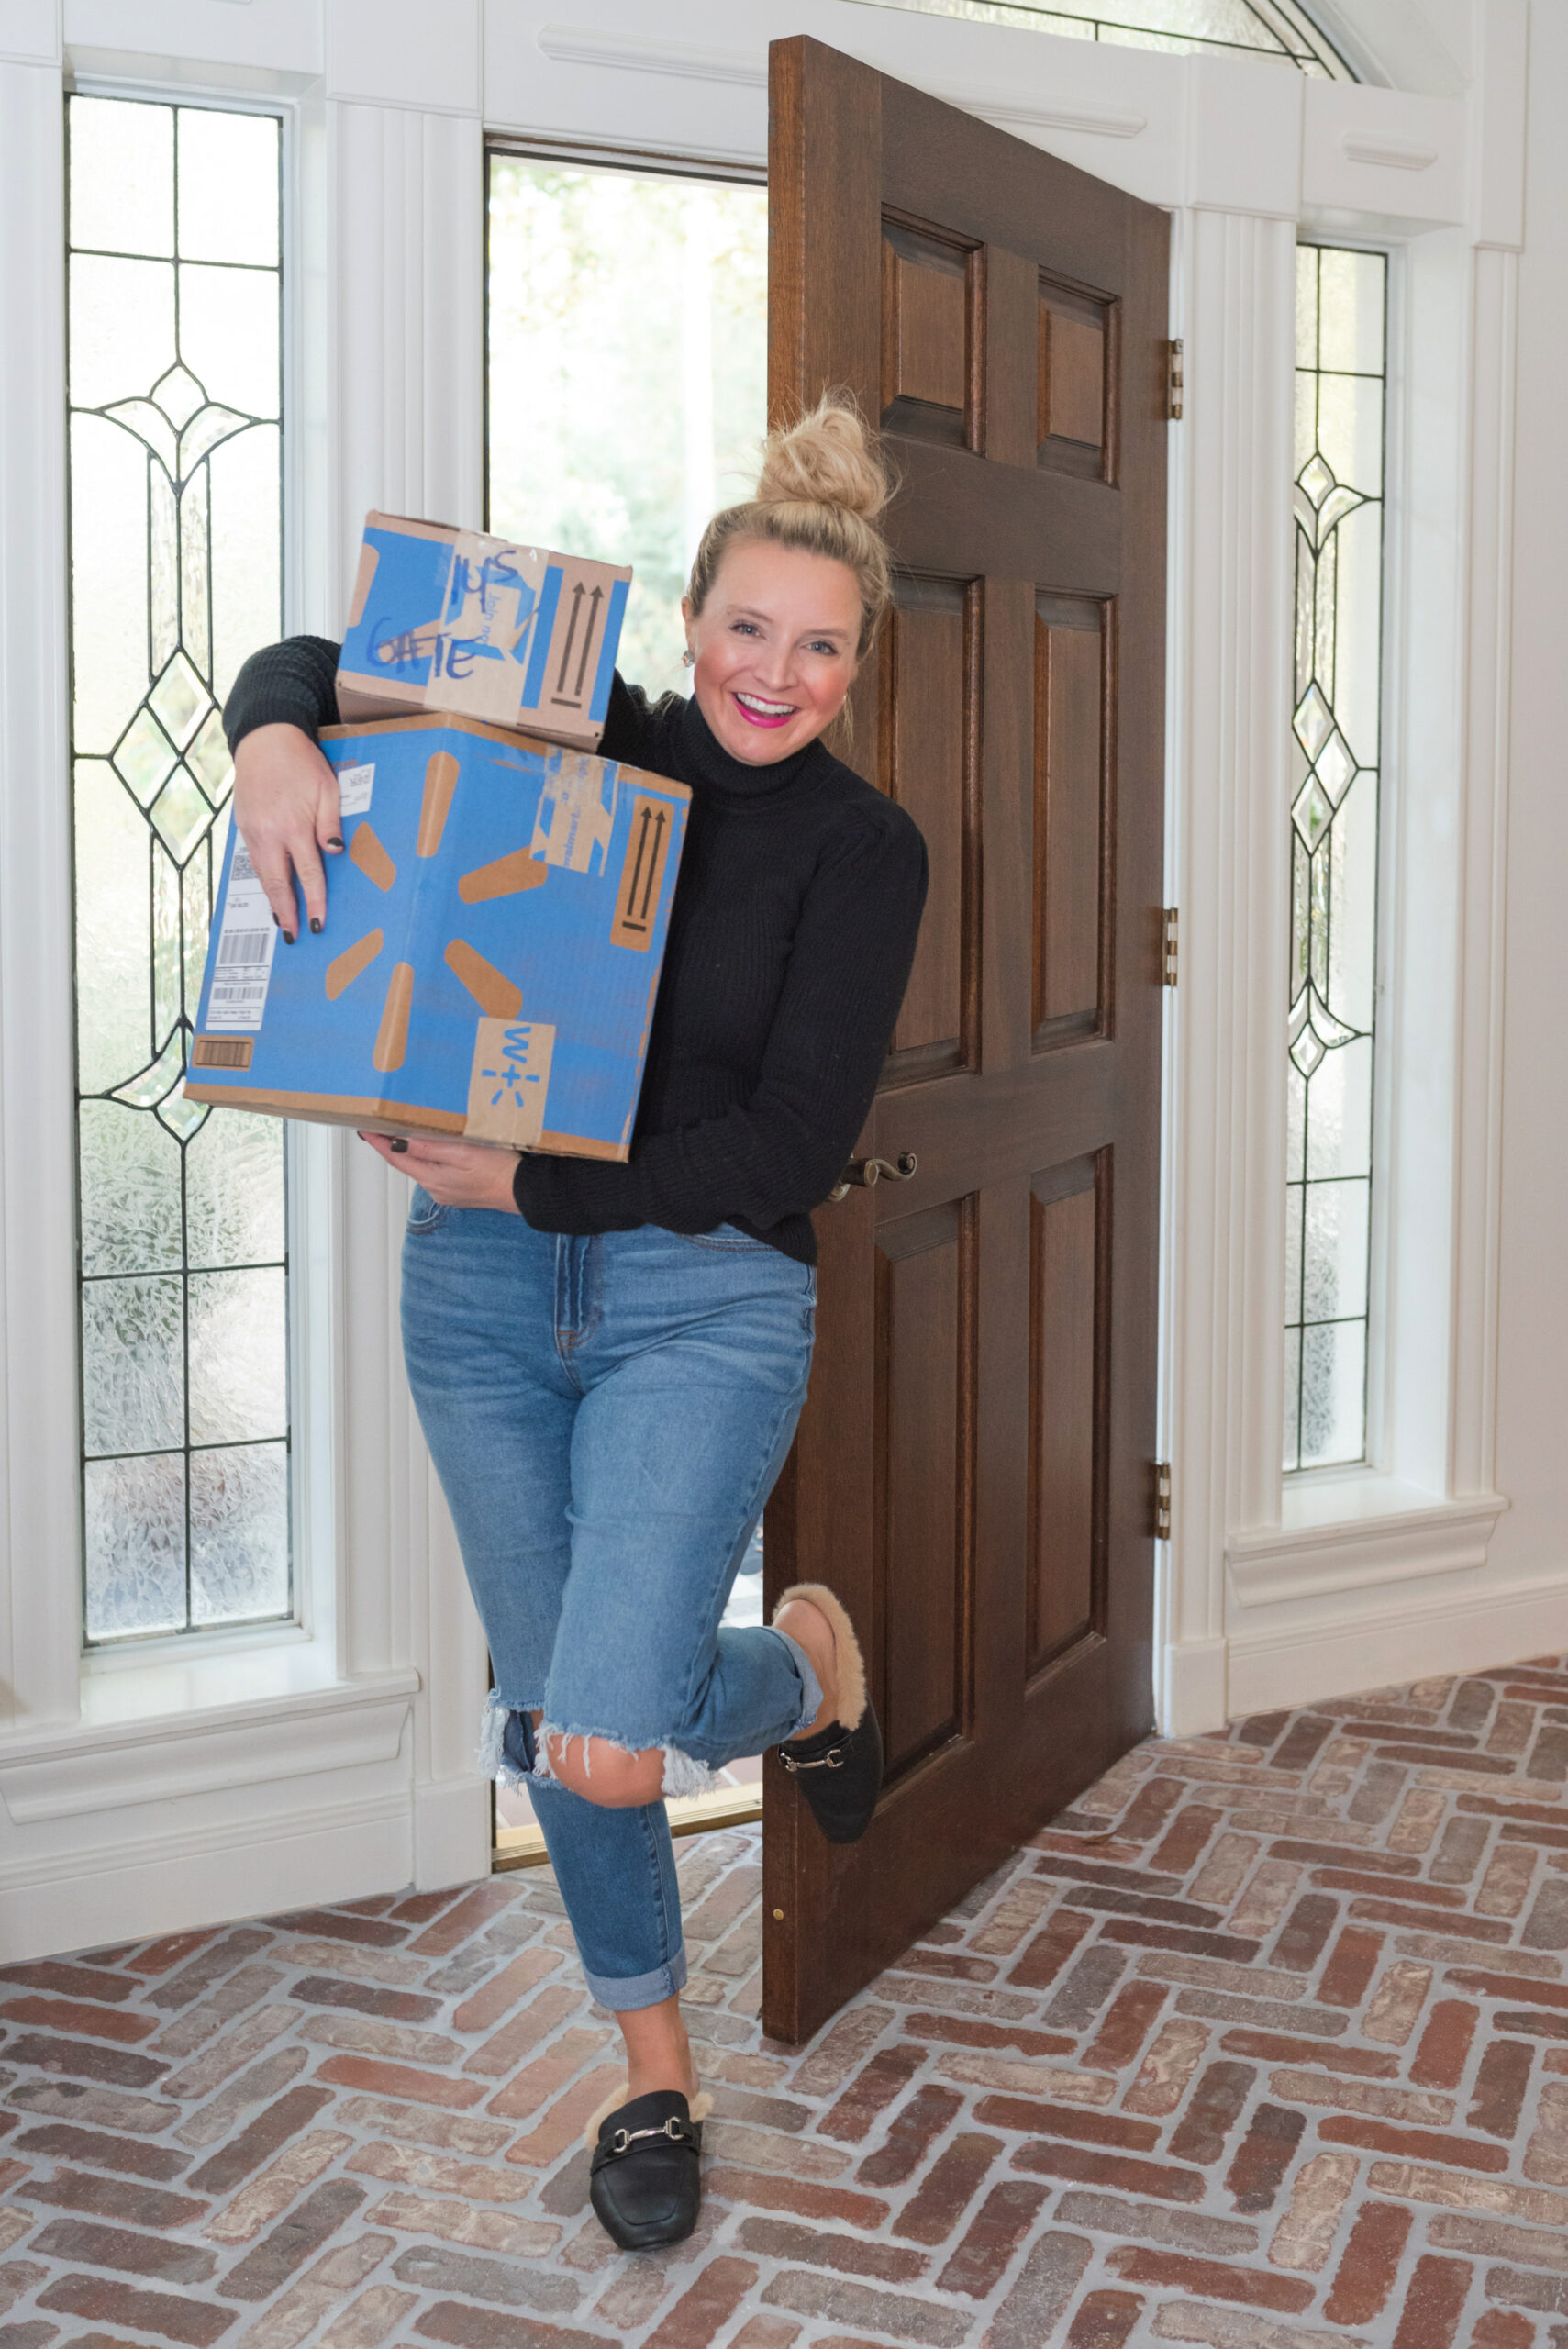 Walmart Gift Ideas by popular Houston life and style blog, Fancy Ashley: image of a woman coming through her front door while holding Walmart packages in her arms.